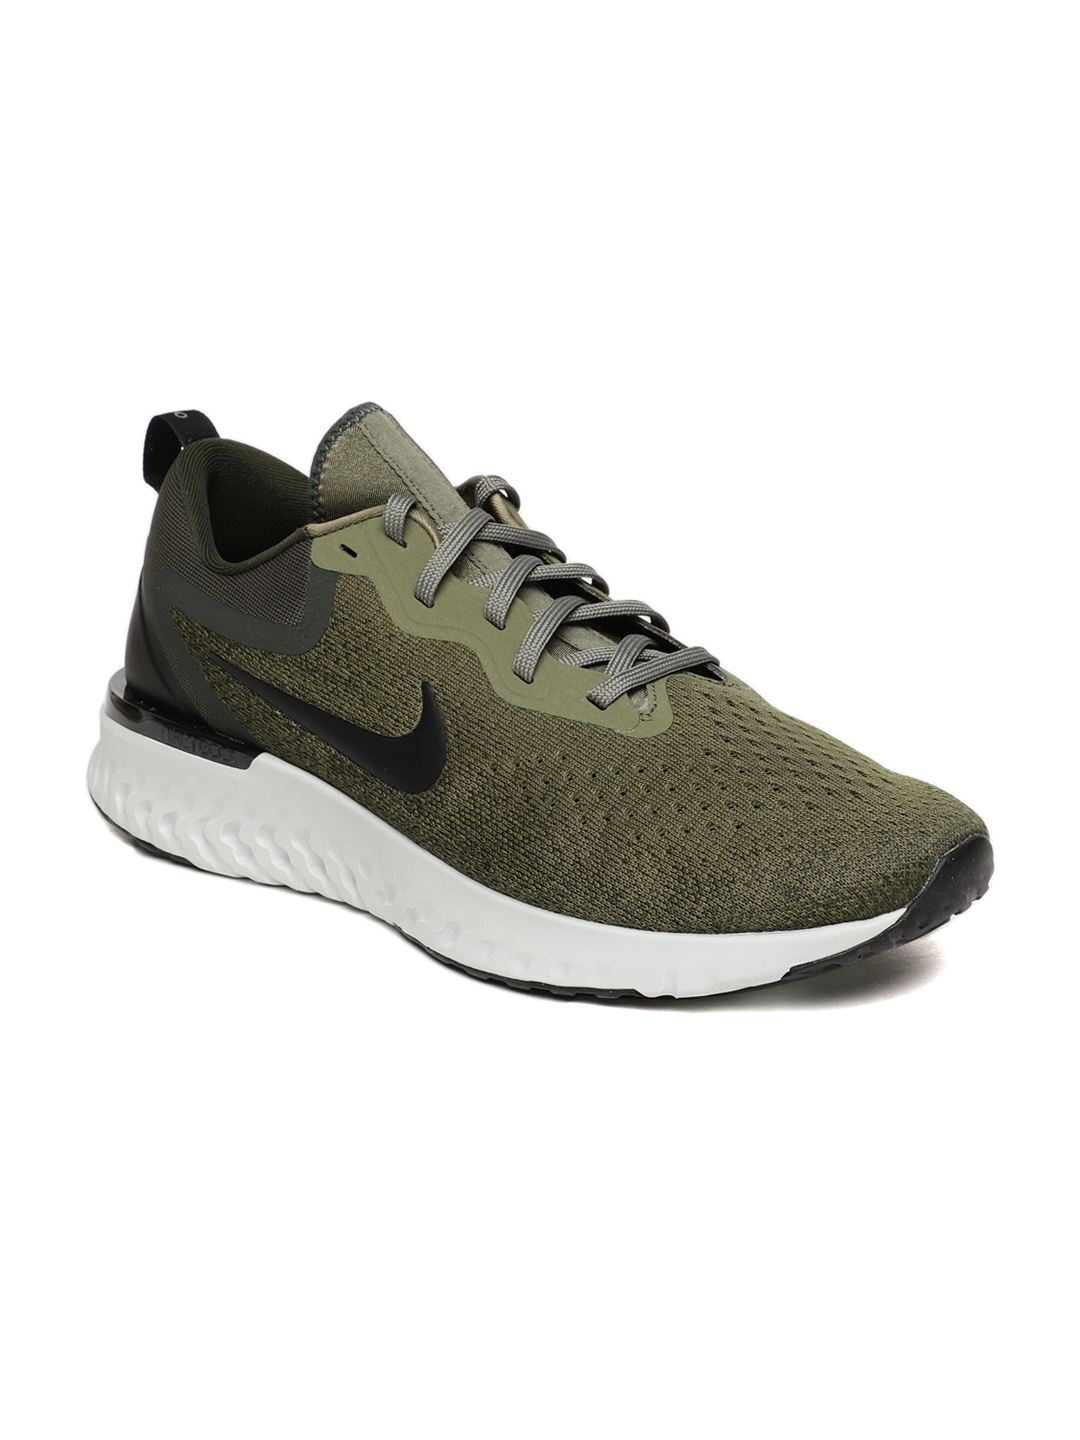 0a570cf14d0b Buy Nike Men Olive Green ODYSSEY REACT Running Shoes - Sports Shoes ...